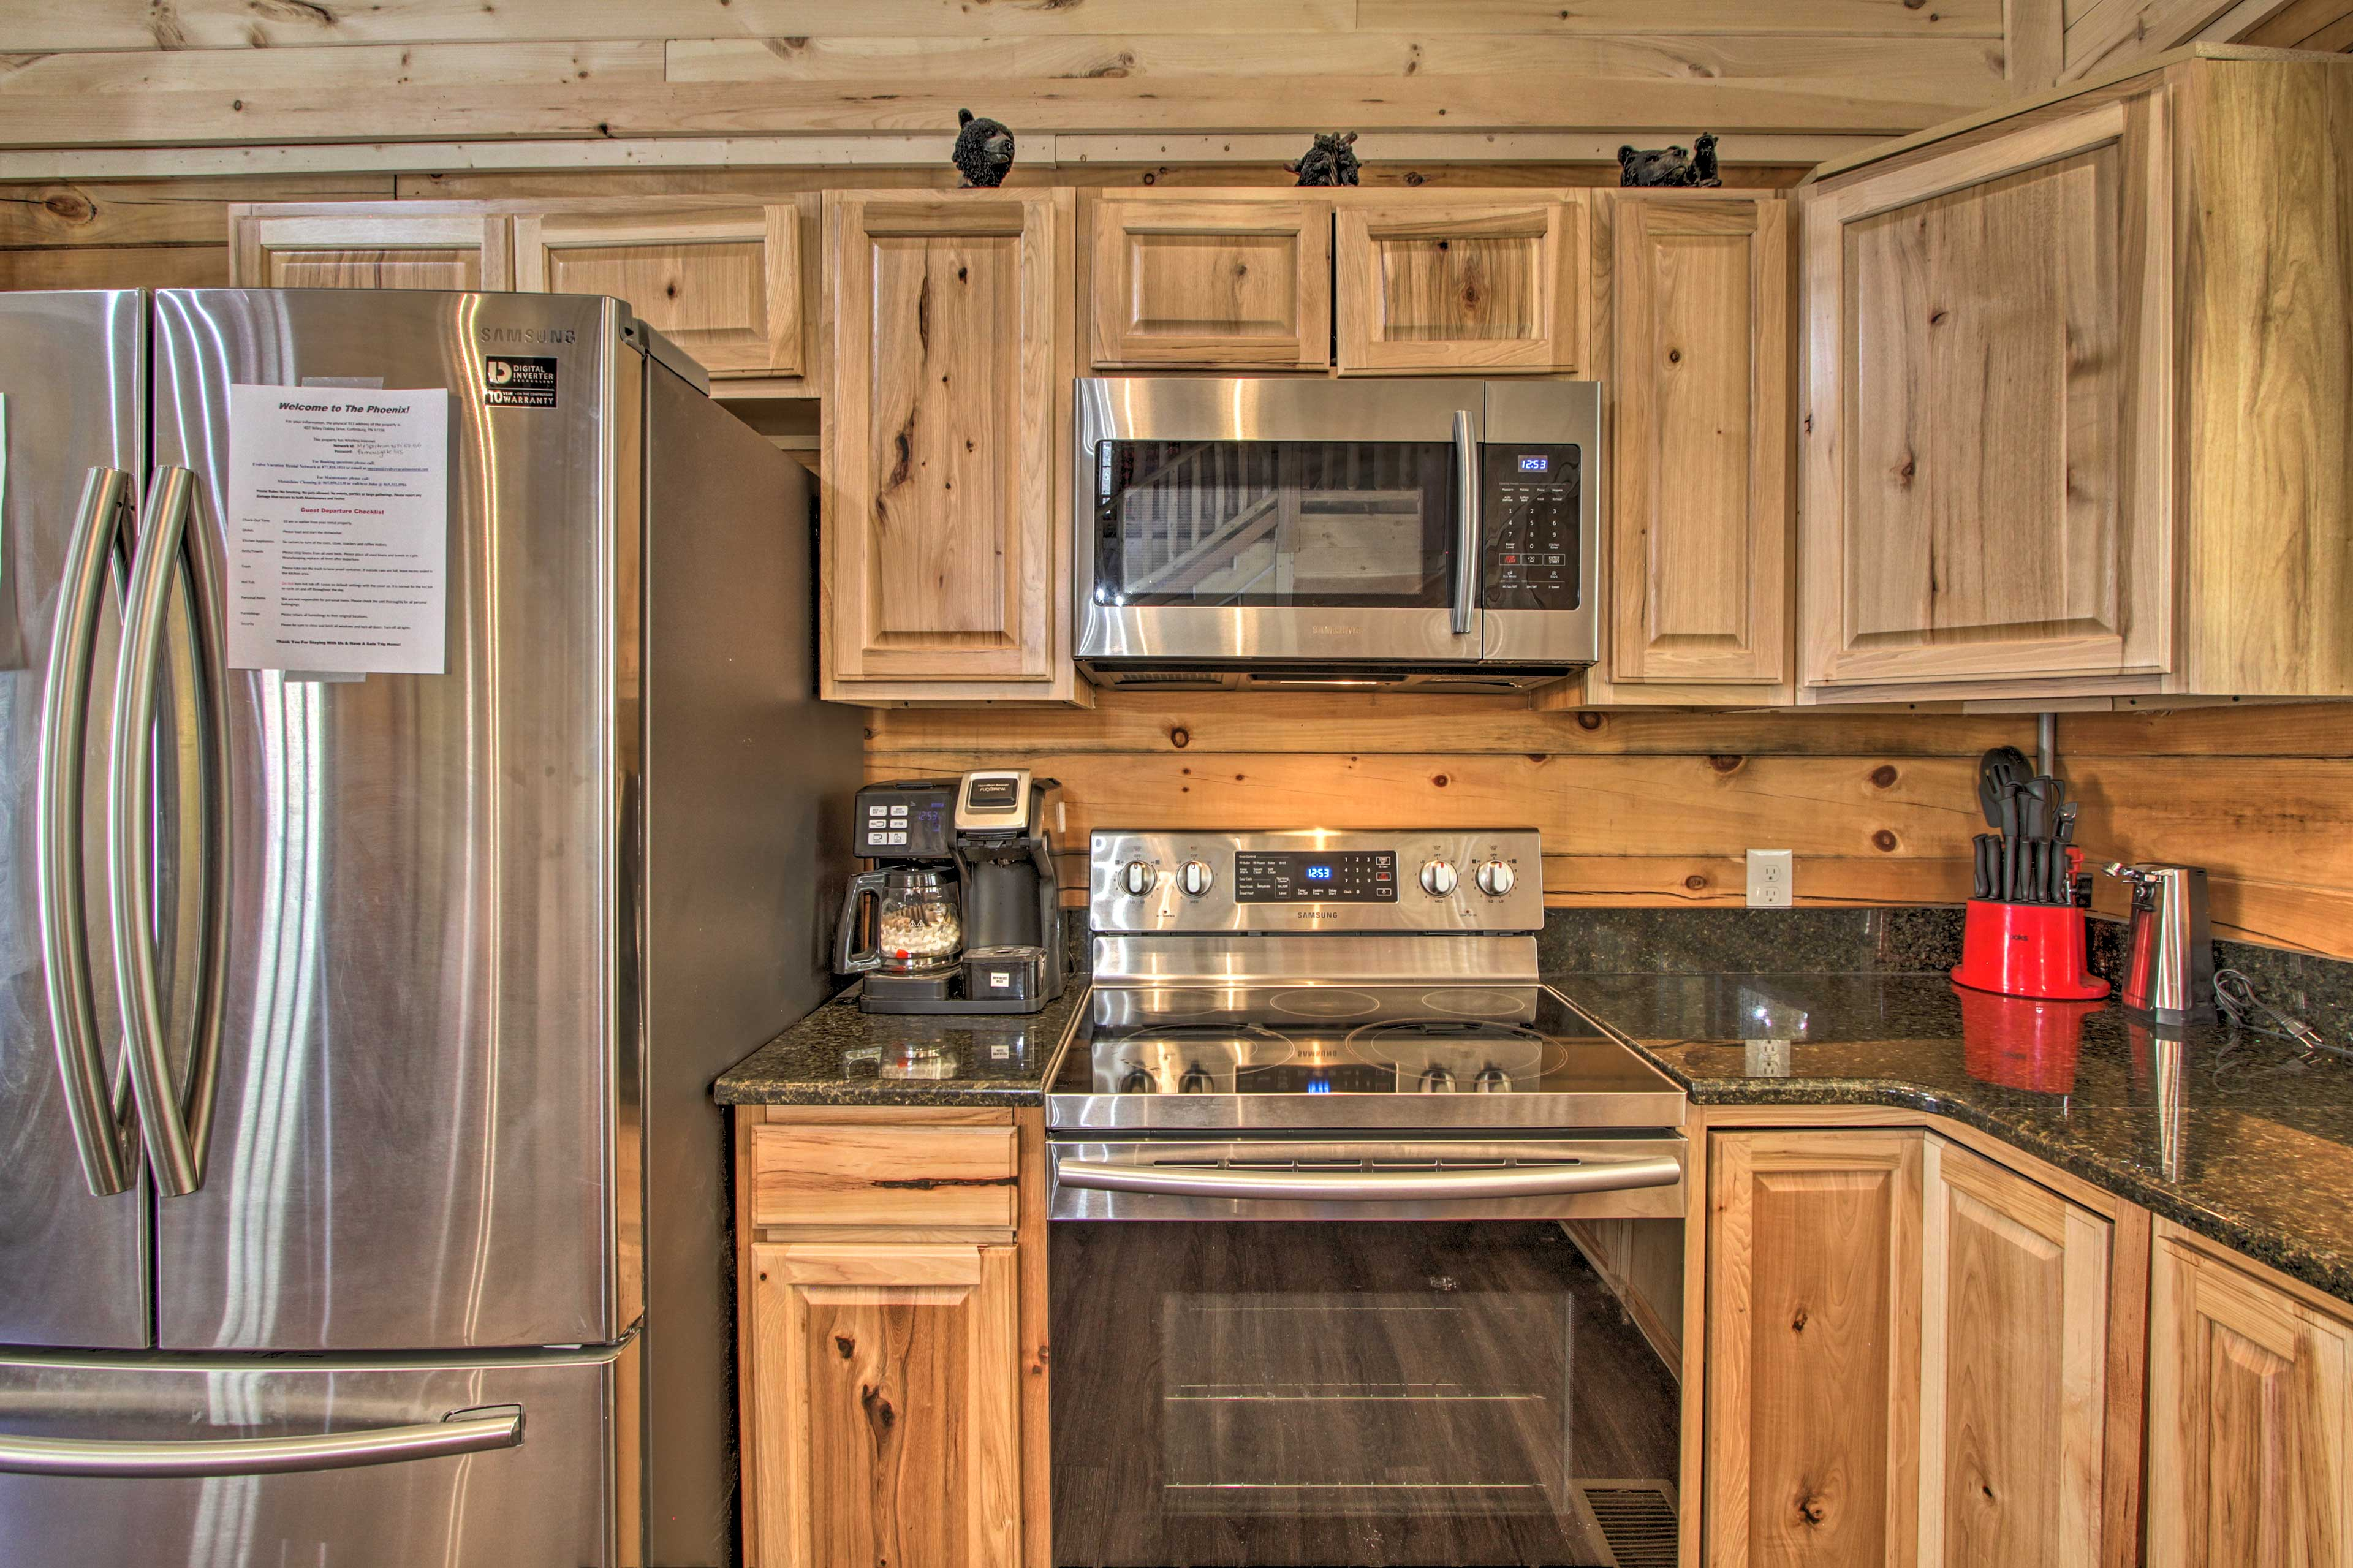 Delight in stainless steel appliances that make meal time a breeze.